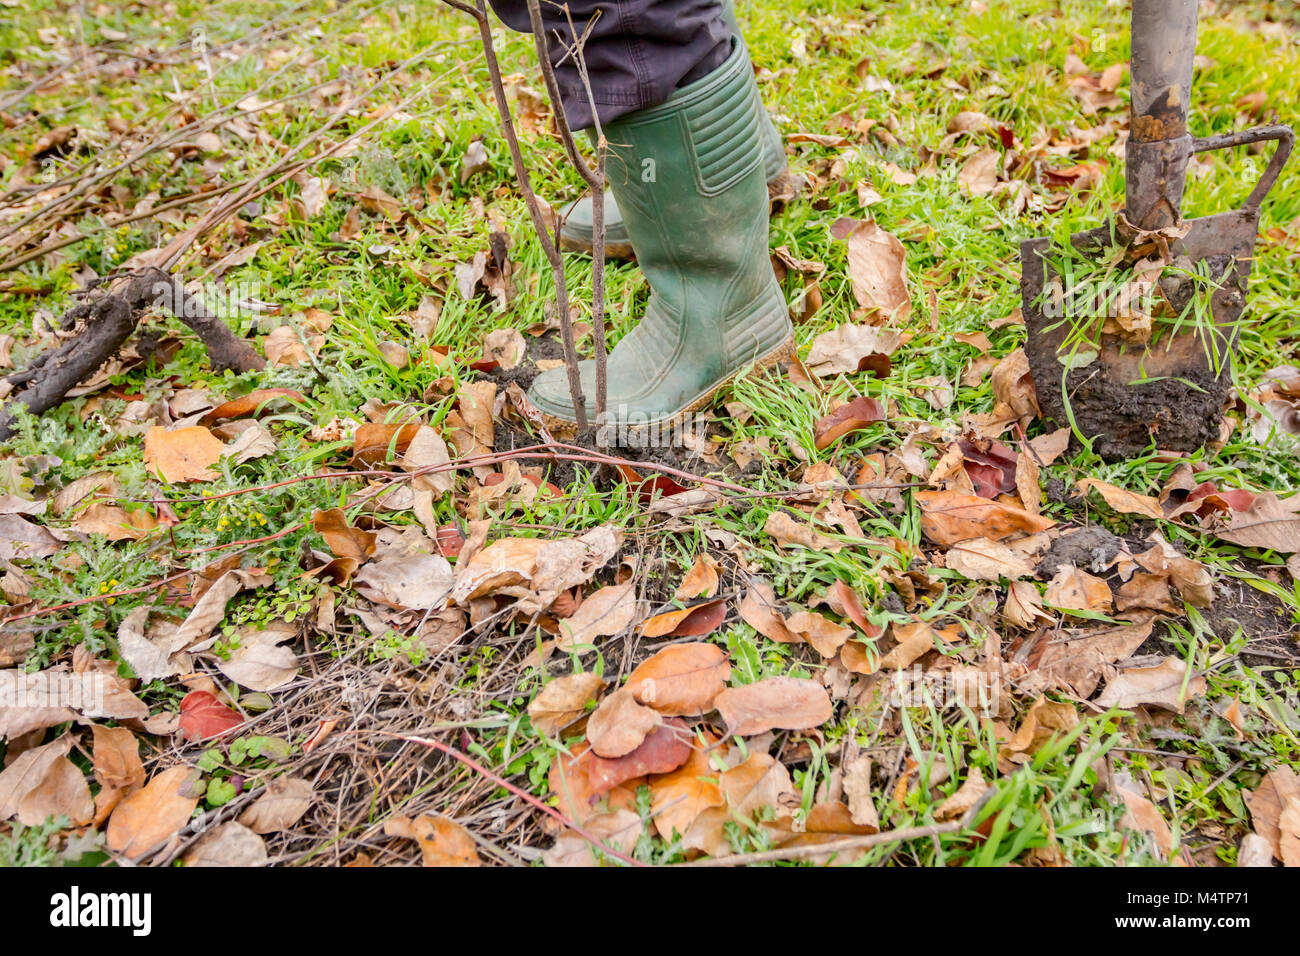 Gardener is using shovel to planting young fruit tree with roots to multiply minor plants in his orchard. - Stock Image